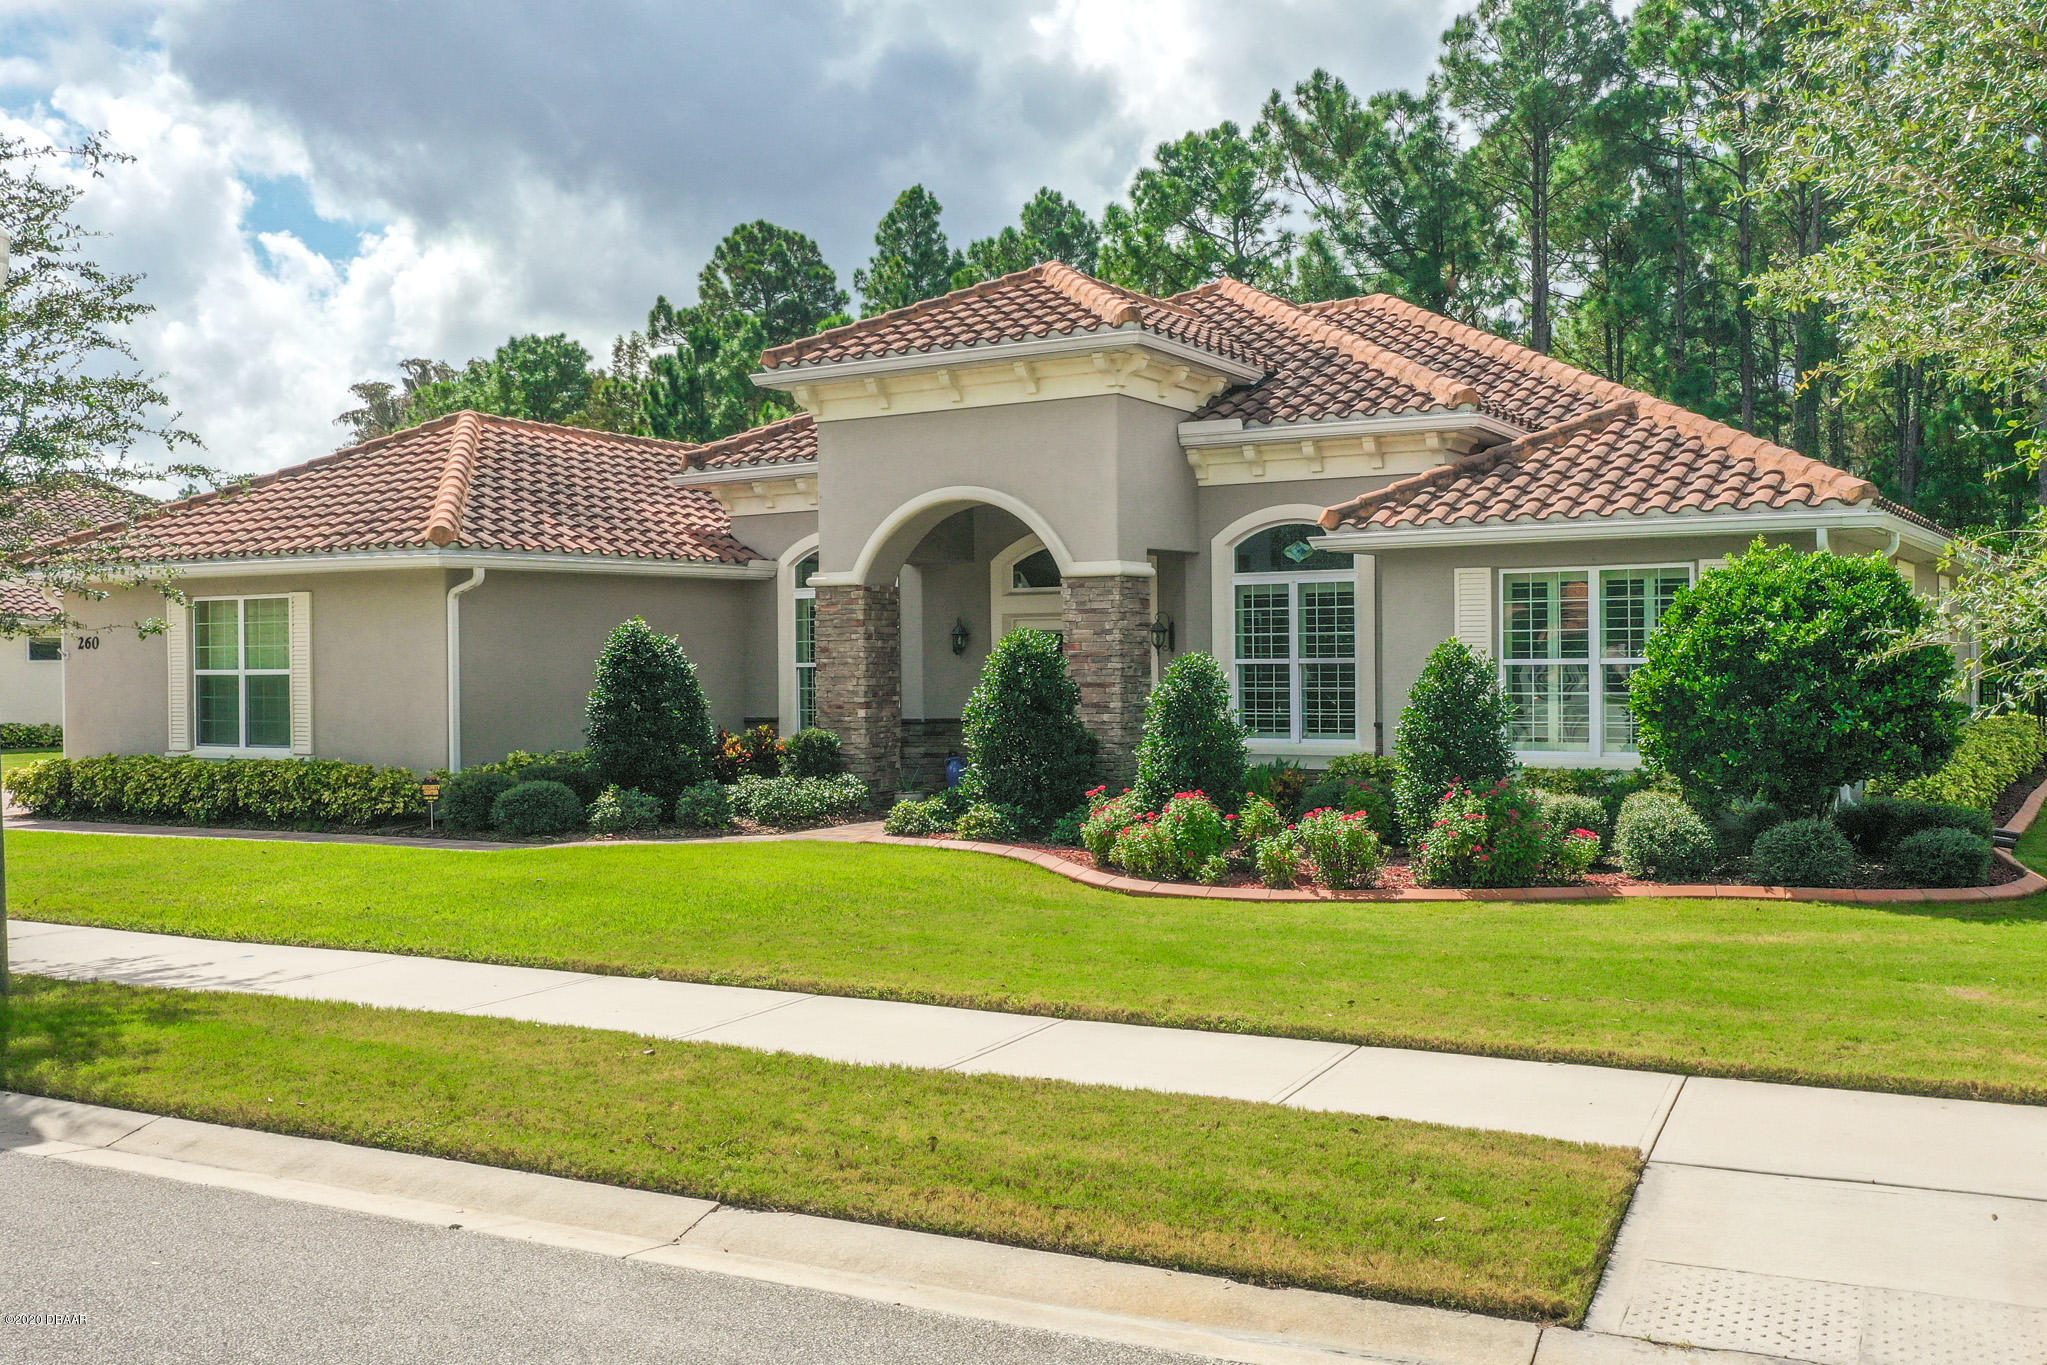 Photo of 260 Portofino Boulevard, New Smyrna Beach, FL 32168